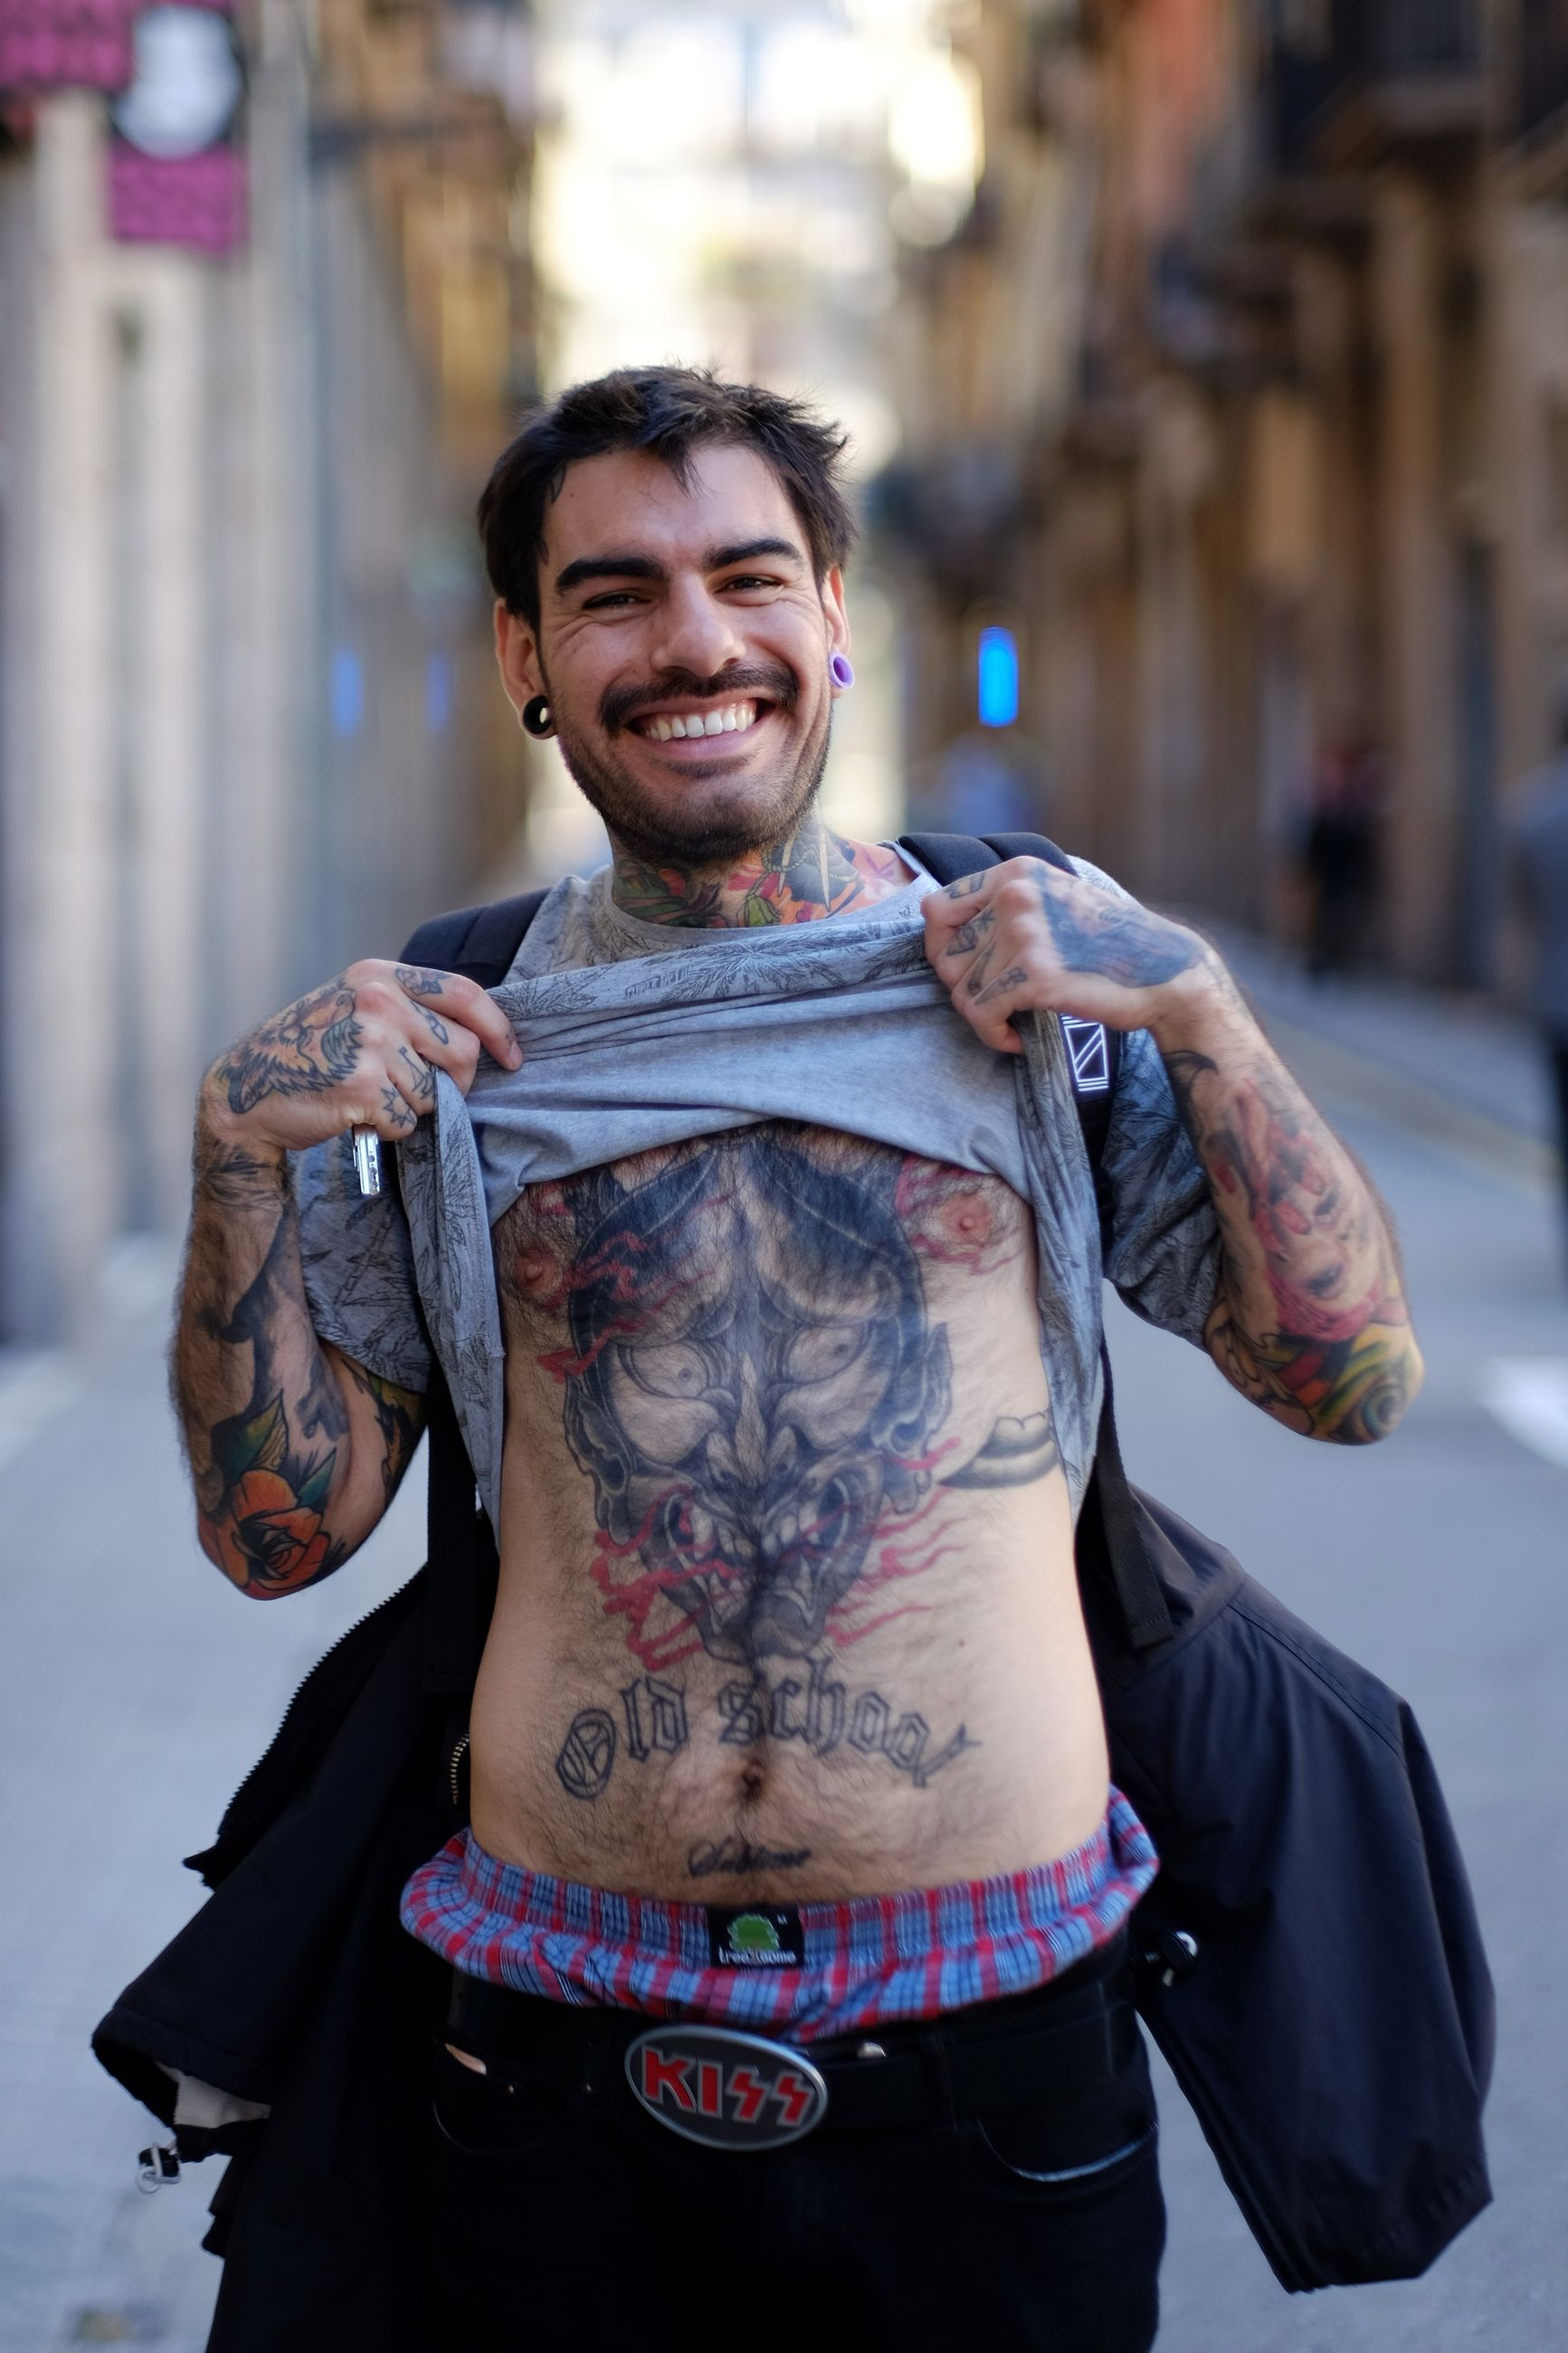 portrait, looking at camera, front view, one person, standing, tattoo, one man only, young adult, only men, adults only, fashion, smiling, people, city, happiness, adult, men, indoors, real people, shirtless, day